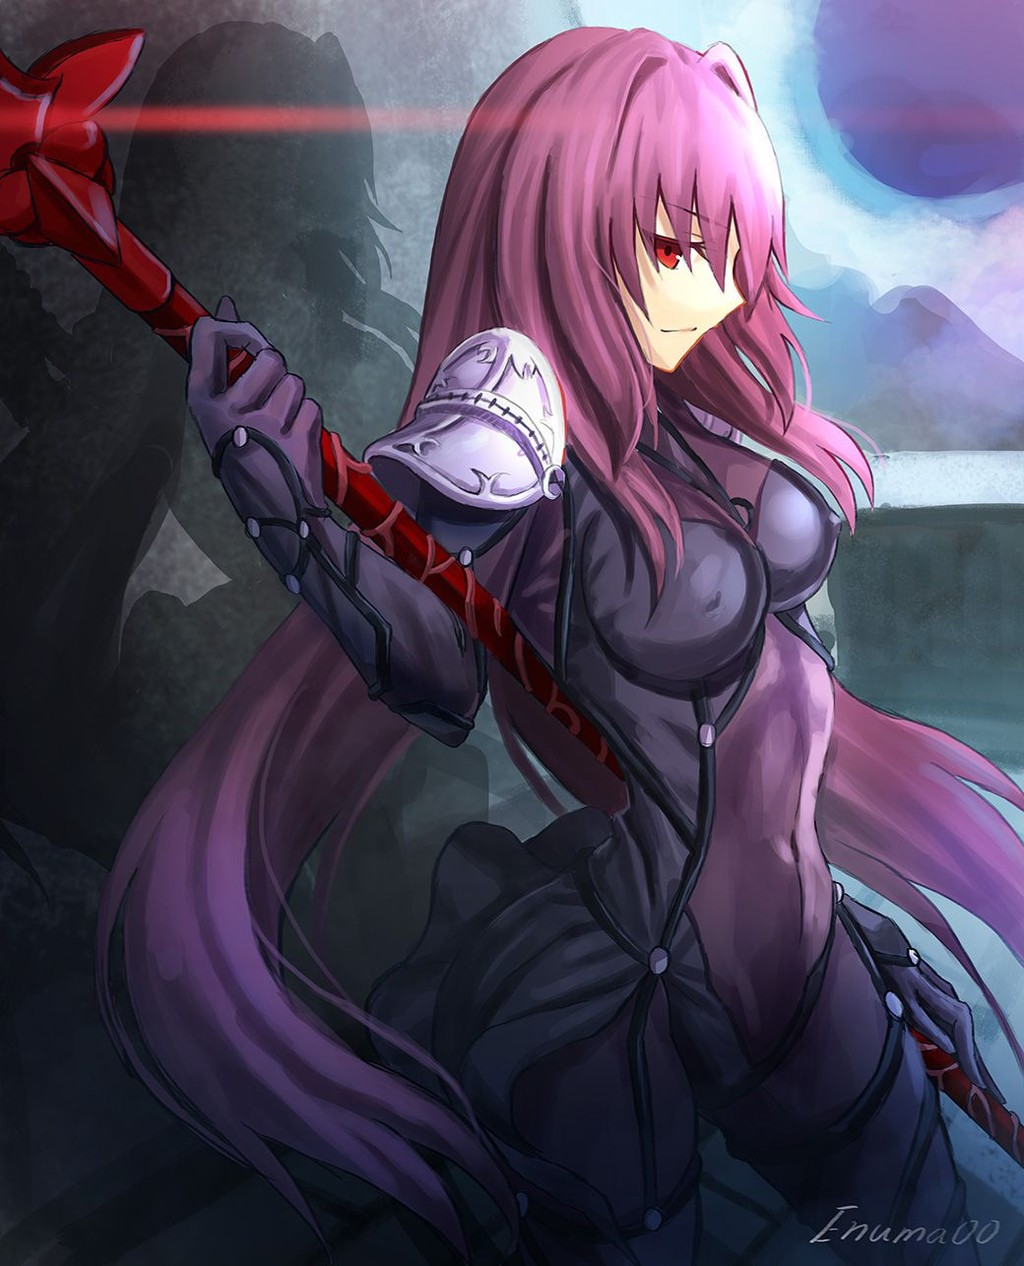 scathach_(fategrand_order)001